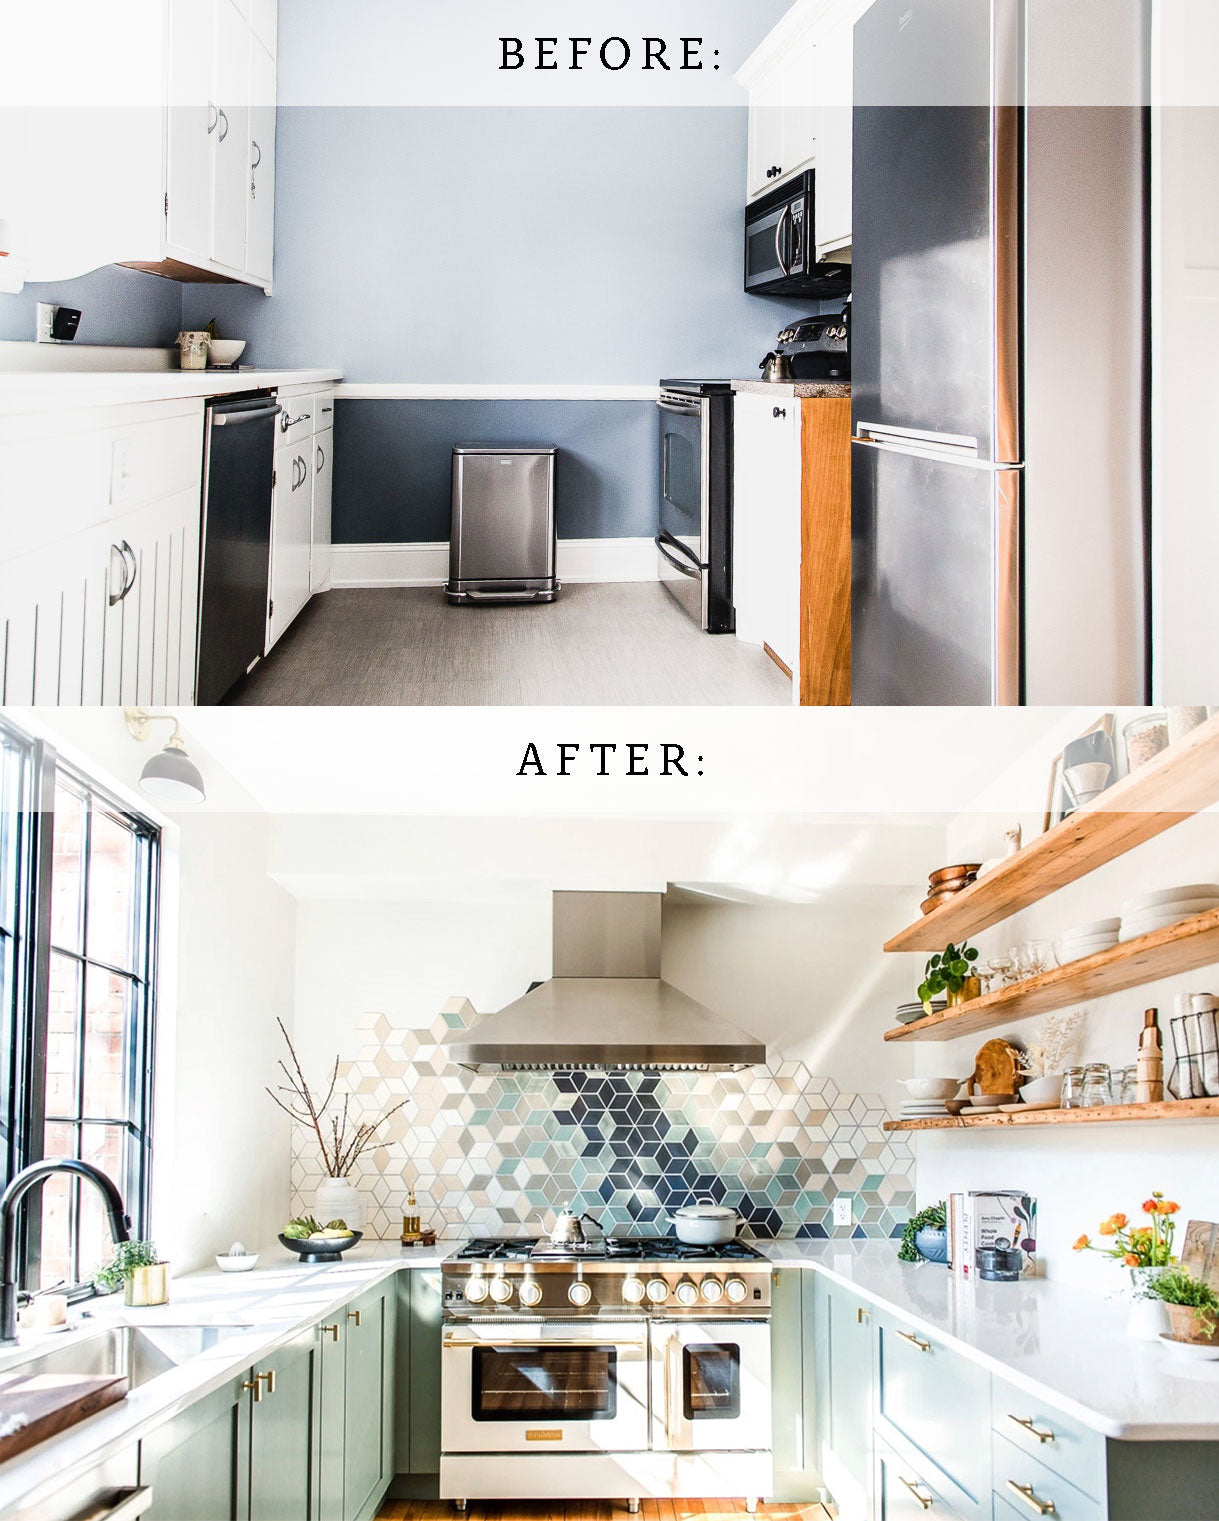 Before & After Small Kitchen Renovation